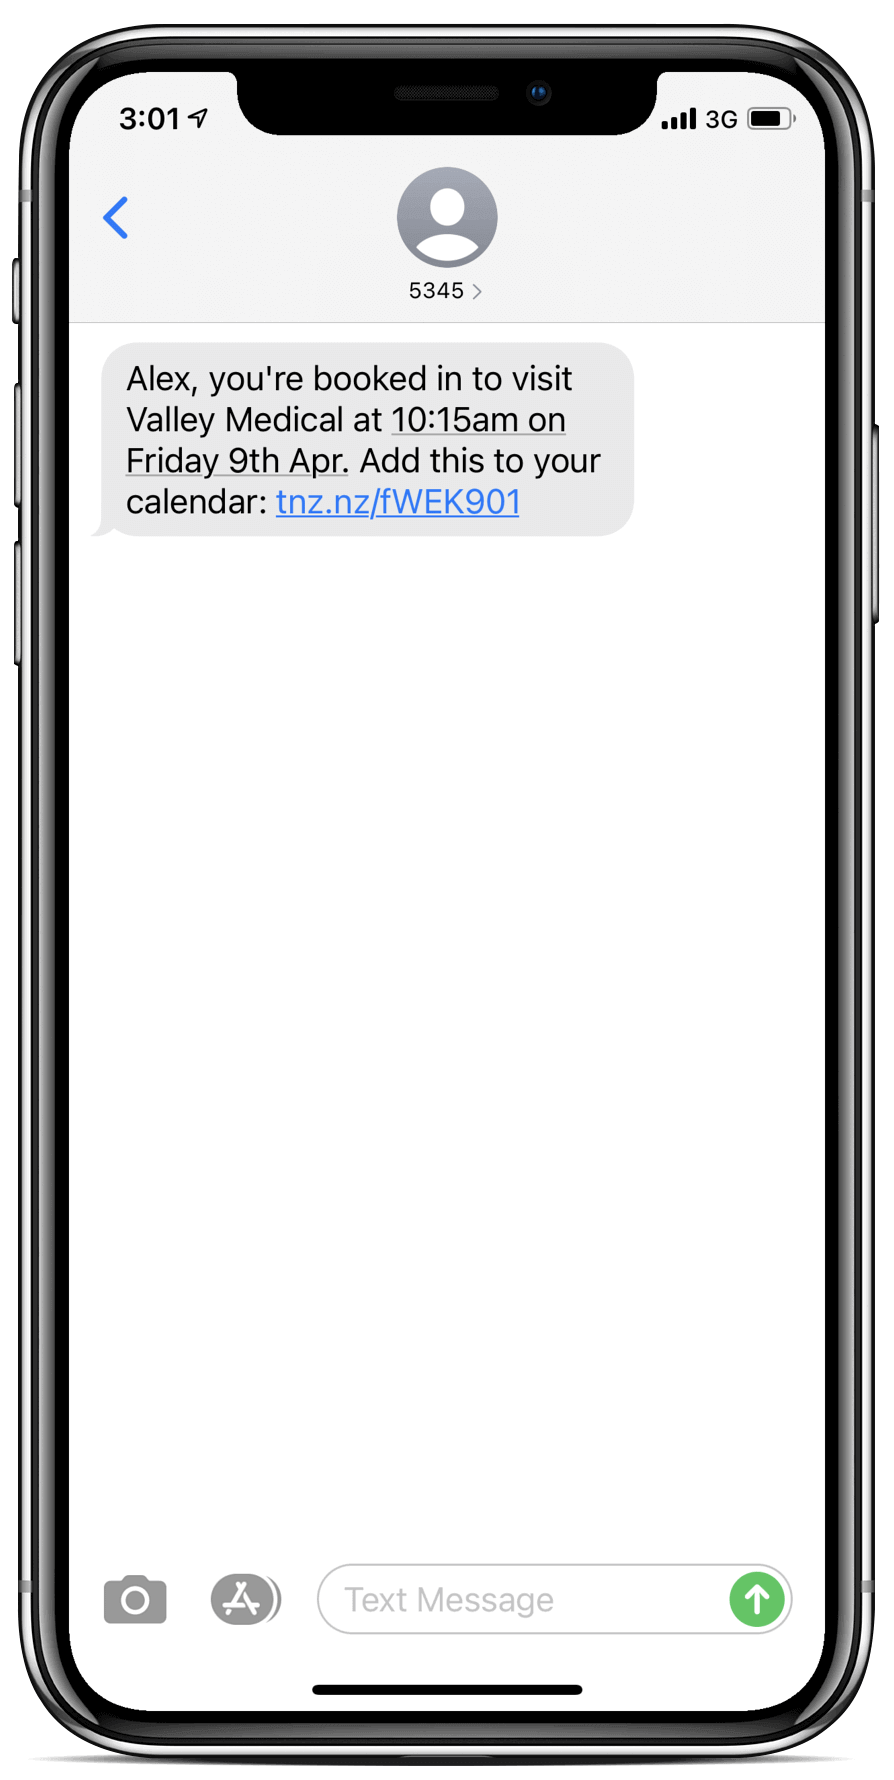 An example of files sent using SMS